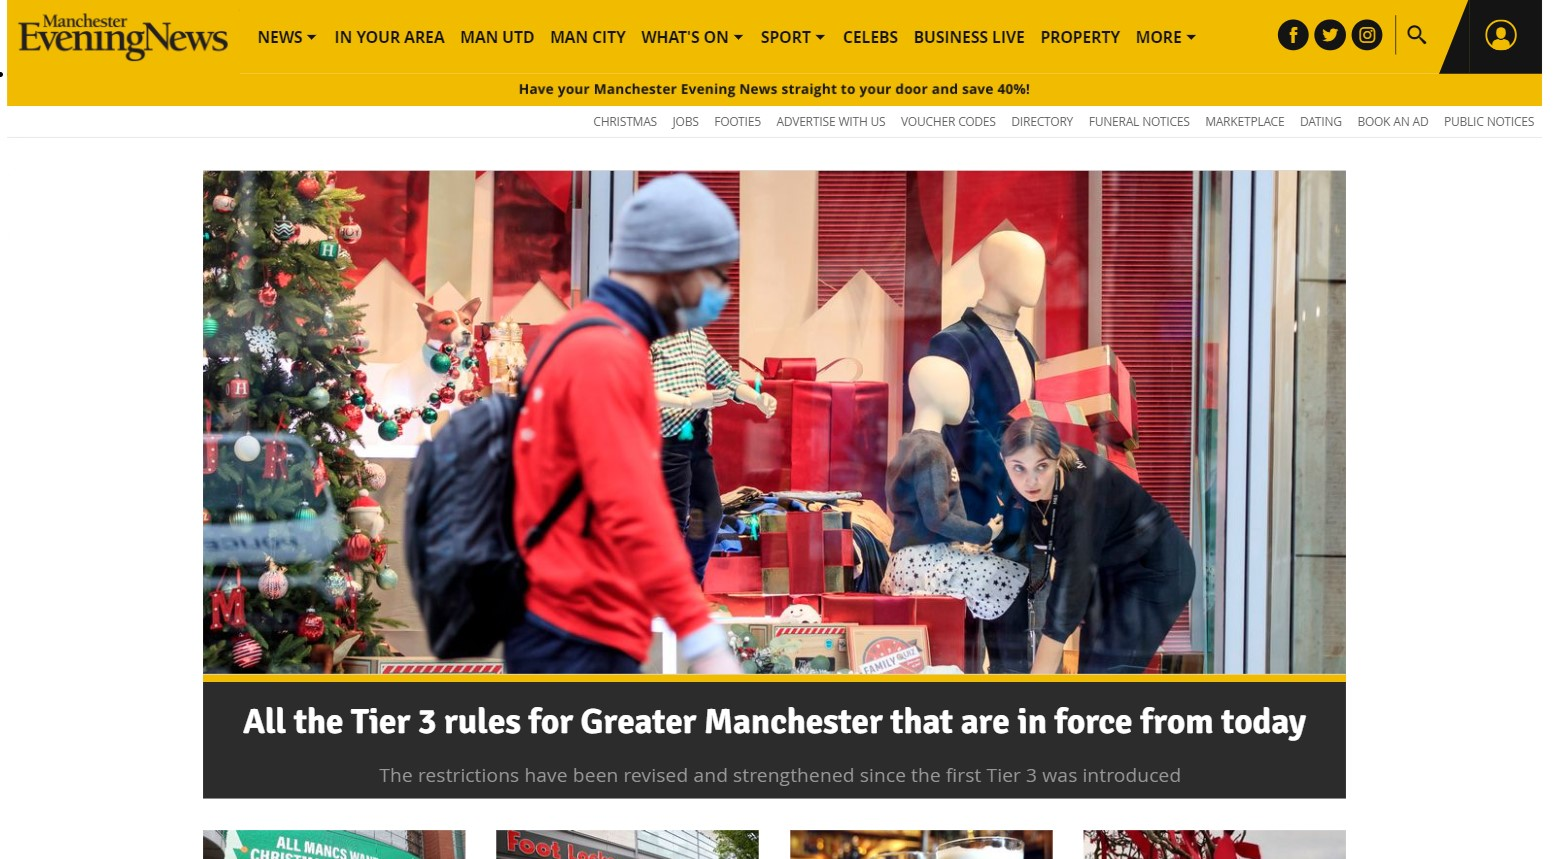 Men Media Ltd: Manchester Evening Newspaper